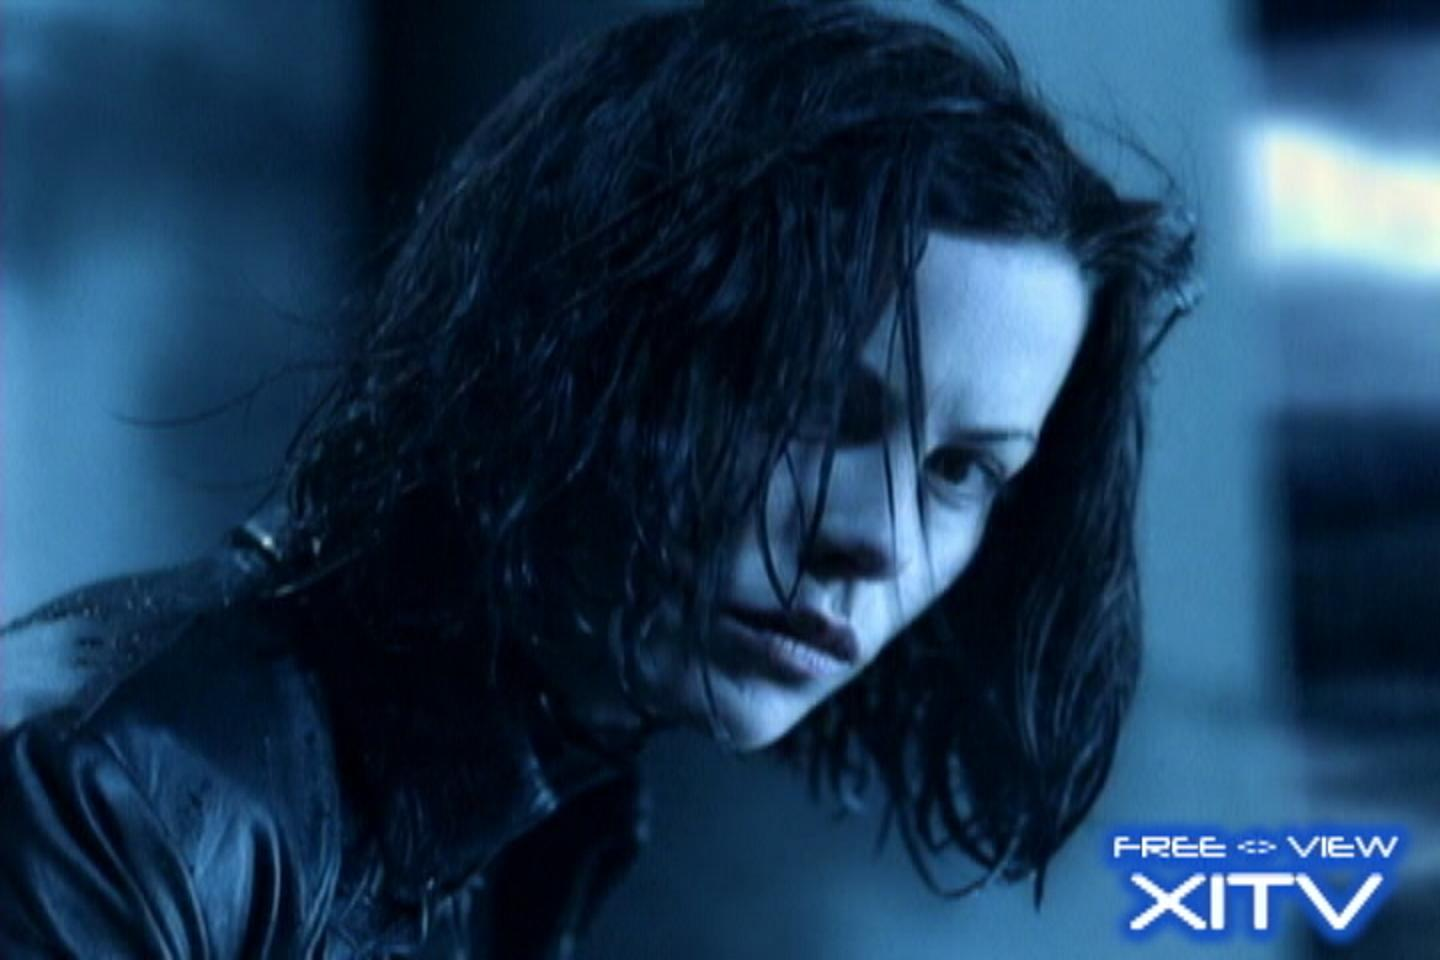 Watch Now! XITV FREE <> VIEW™  &quot;UNDERWORLD&quot; Starring Kate Beckinsale! XITV Is Must See TV!